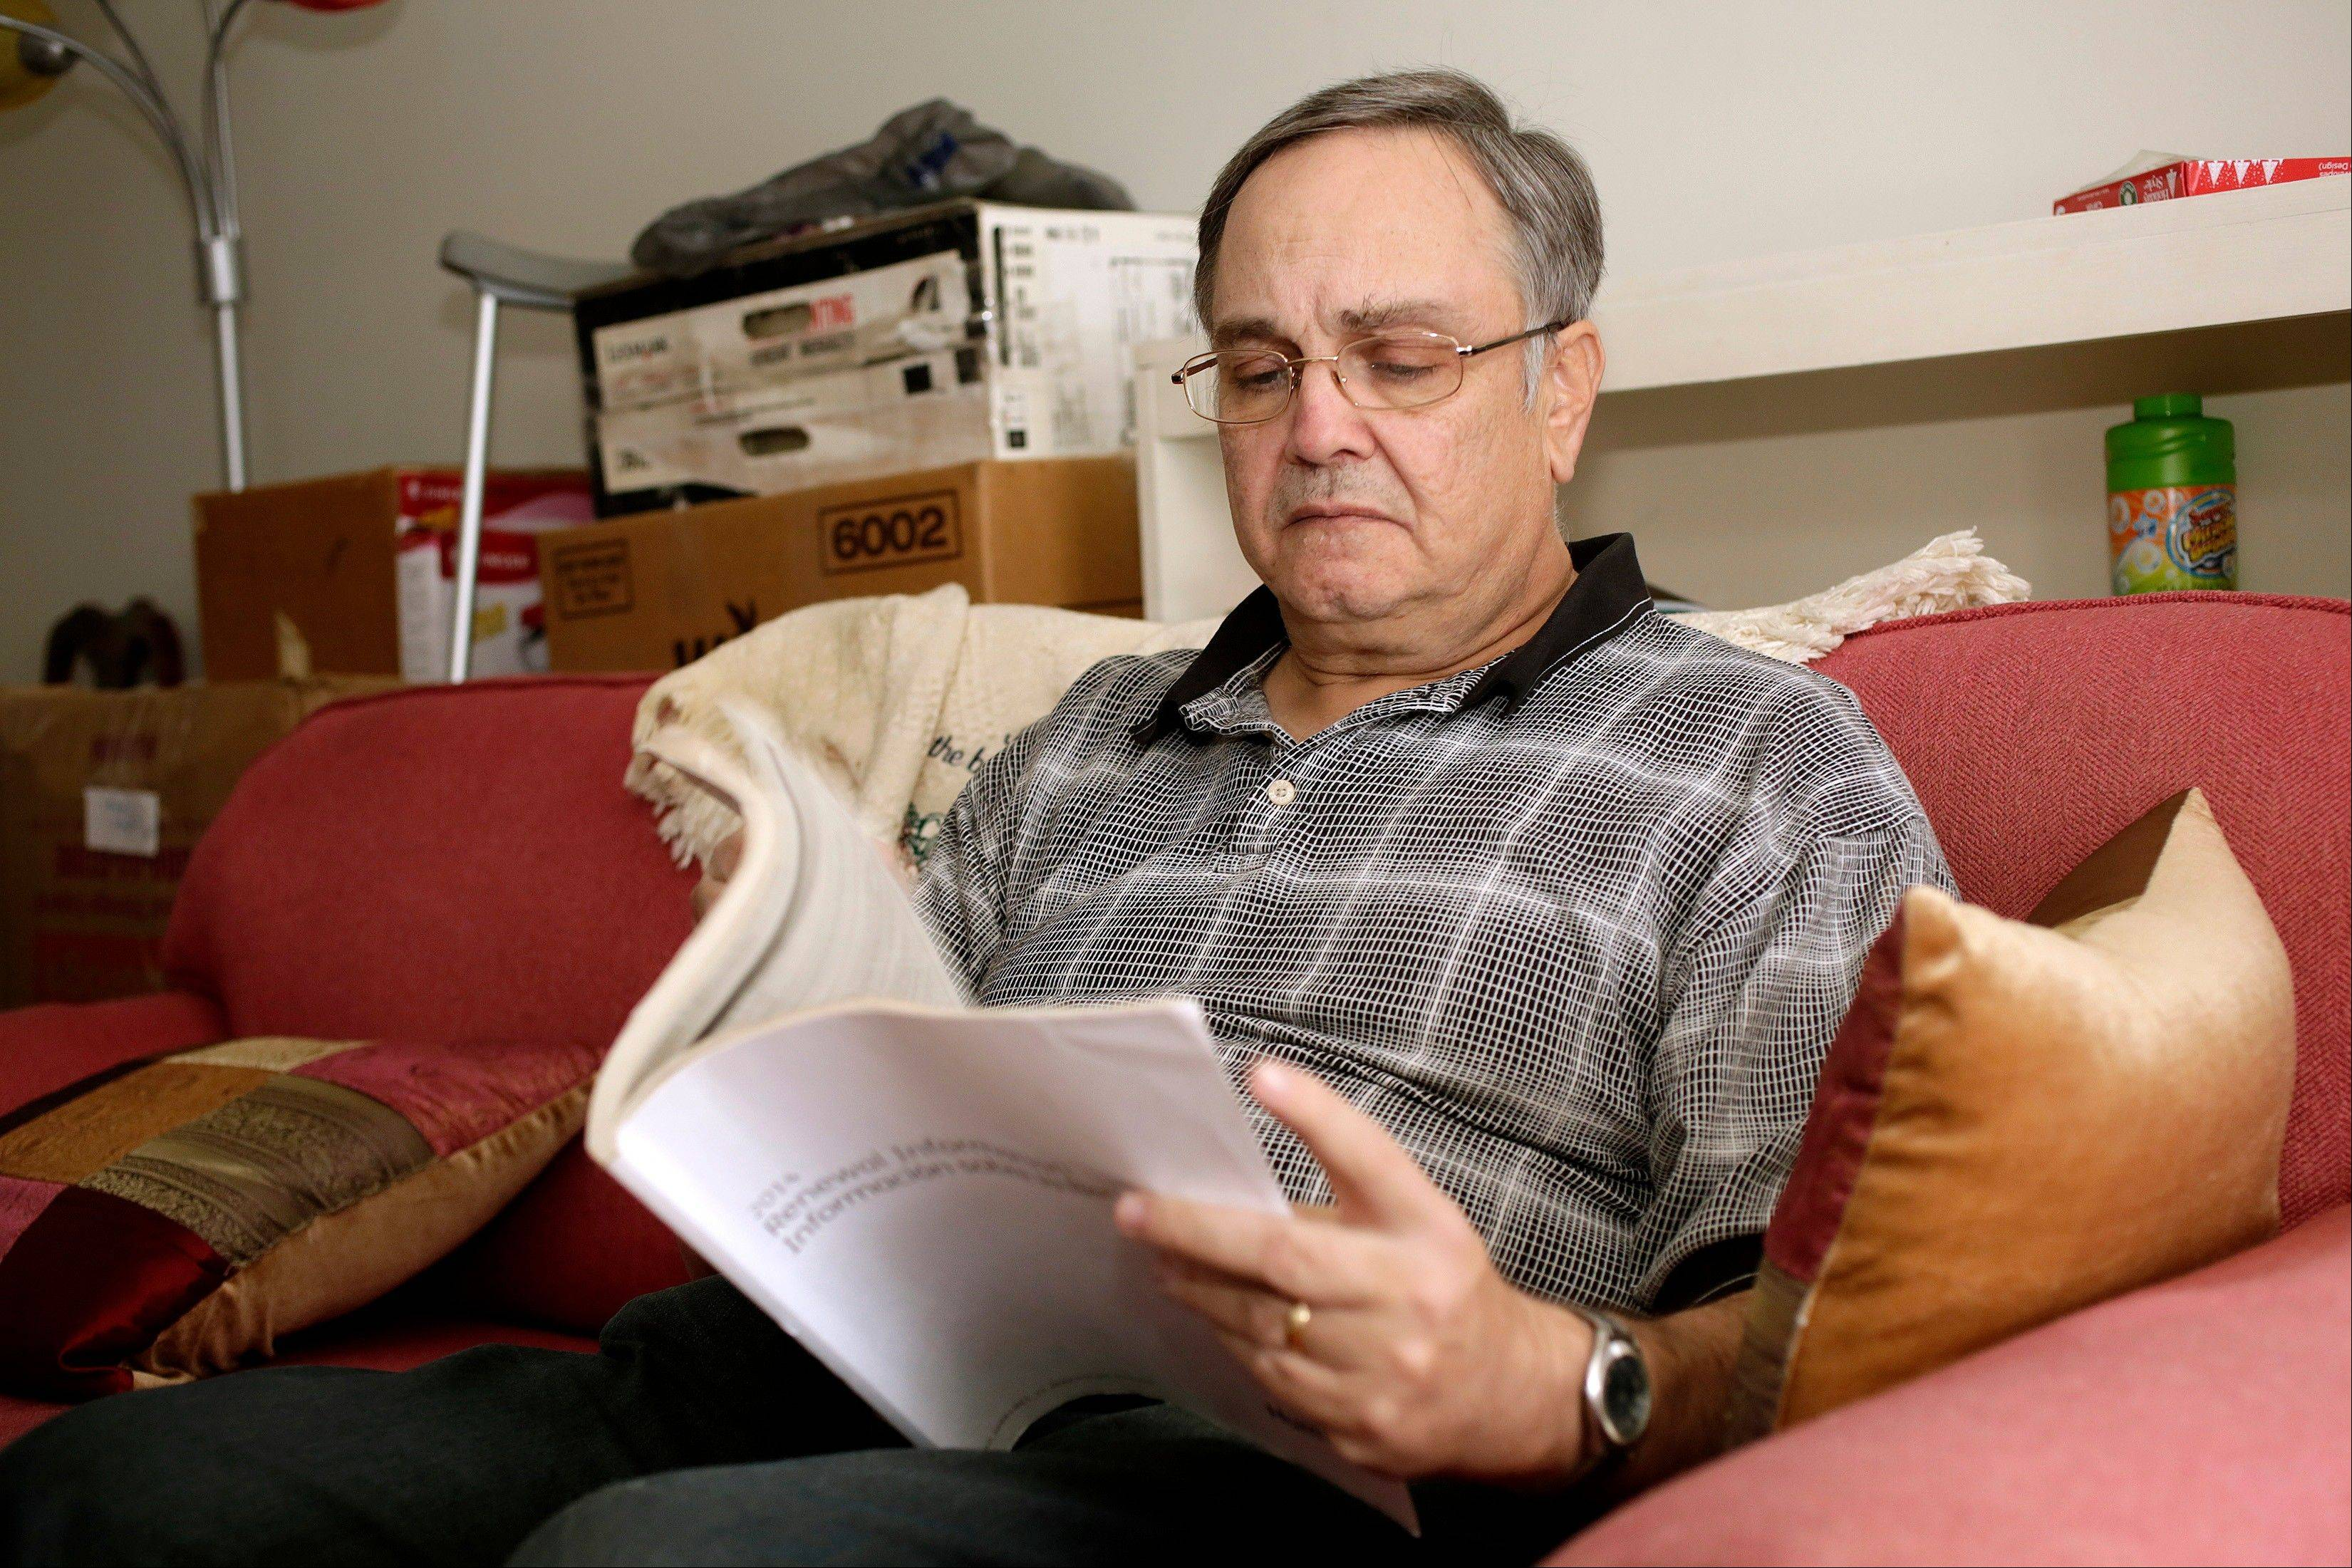 Howard Kraft looks over healthcare information in his Lincolnton, N.C. home Monday. A painful spinal problem left him unable to work as a hotel bellman. But he�s got coverage because federal law now forbids insurers from turning away people with health problems. �I am not one of these people getting a policy because I�m being made to,� Kraft said. �I need one to stay alive.�